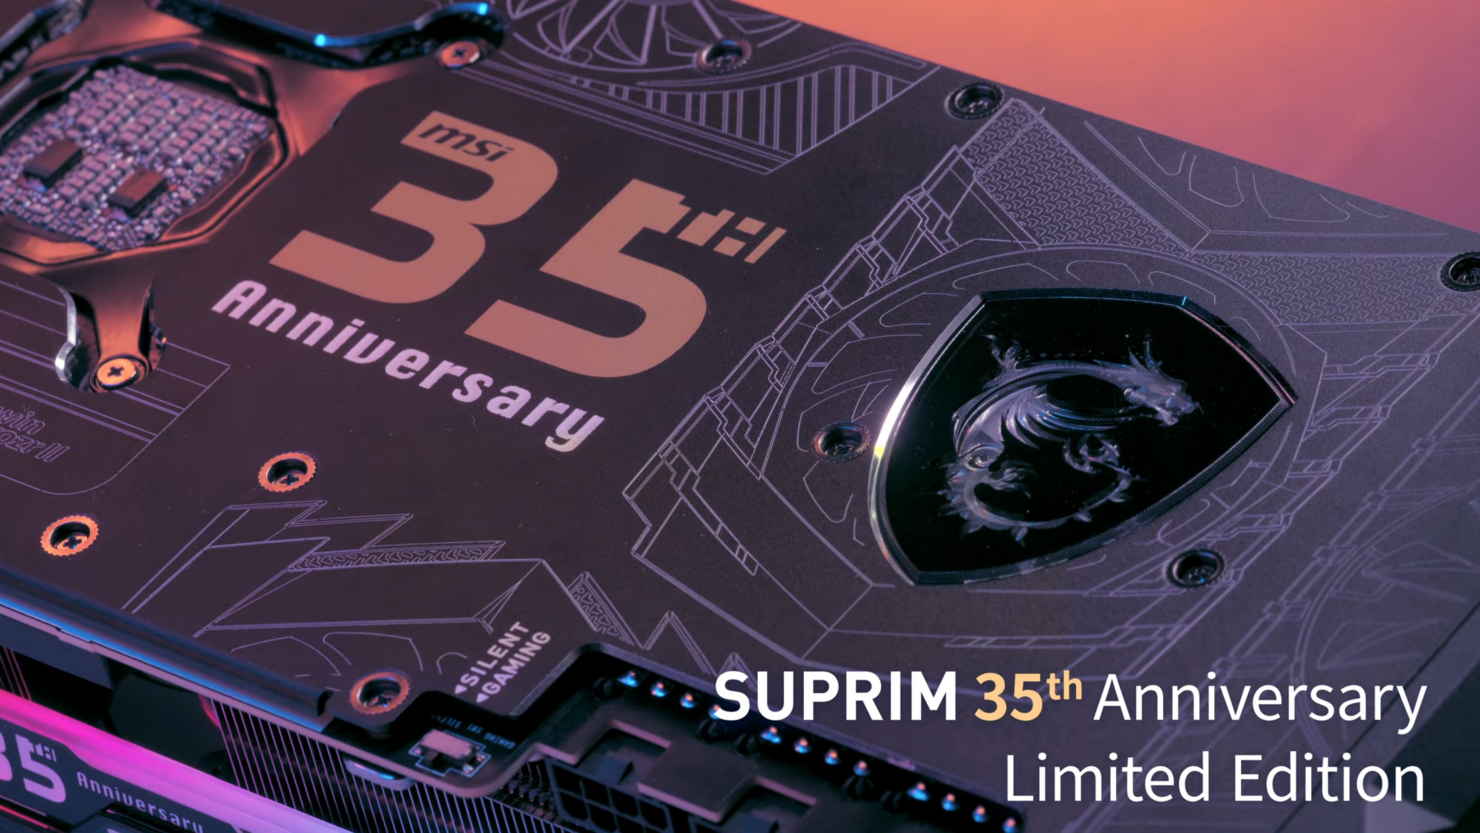 msi-provides-first-look-at-its-geforce-rtx-30-suprim-35th-anniversary-limited-edition-graphics-card